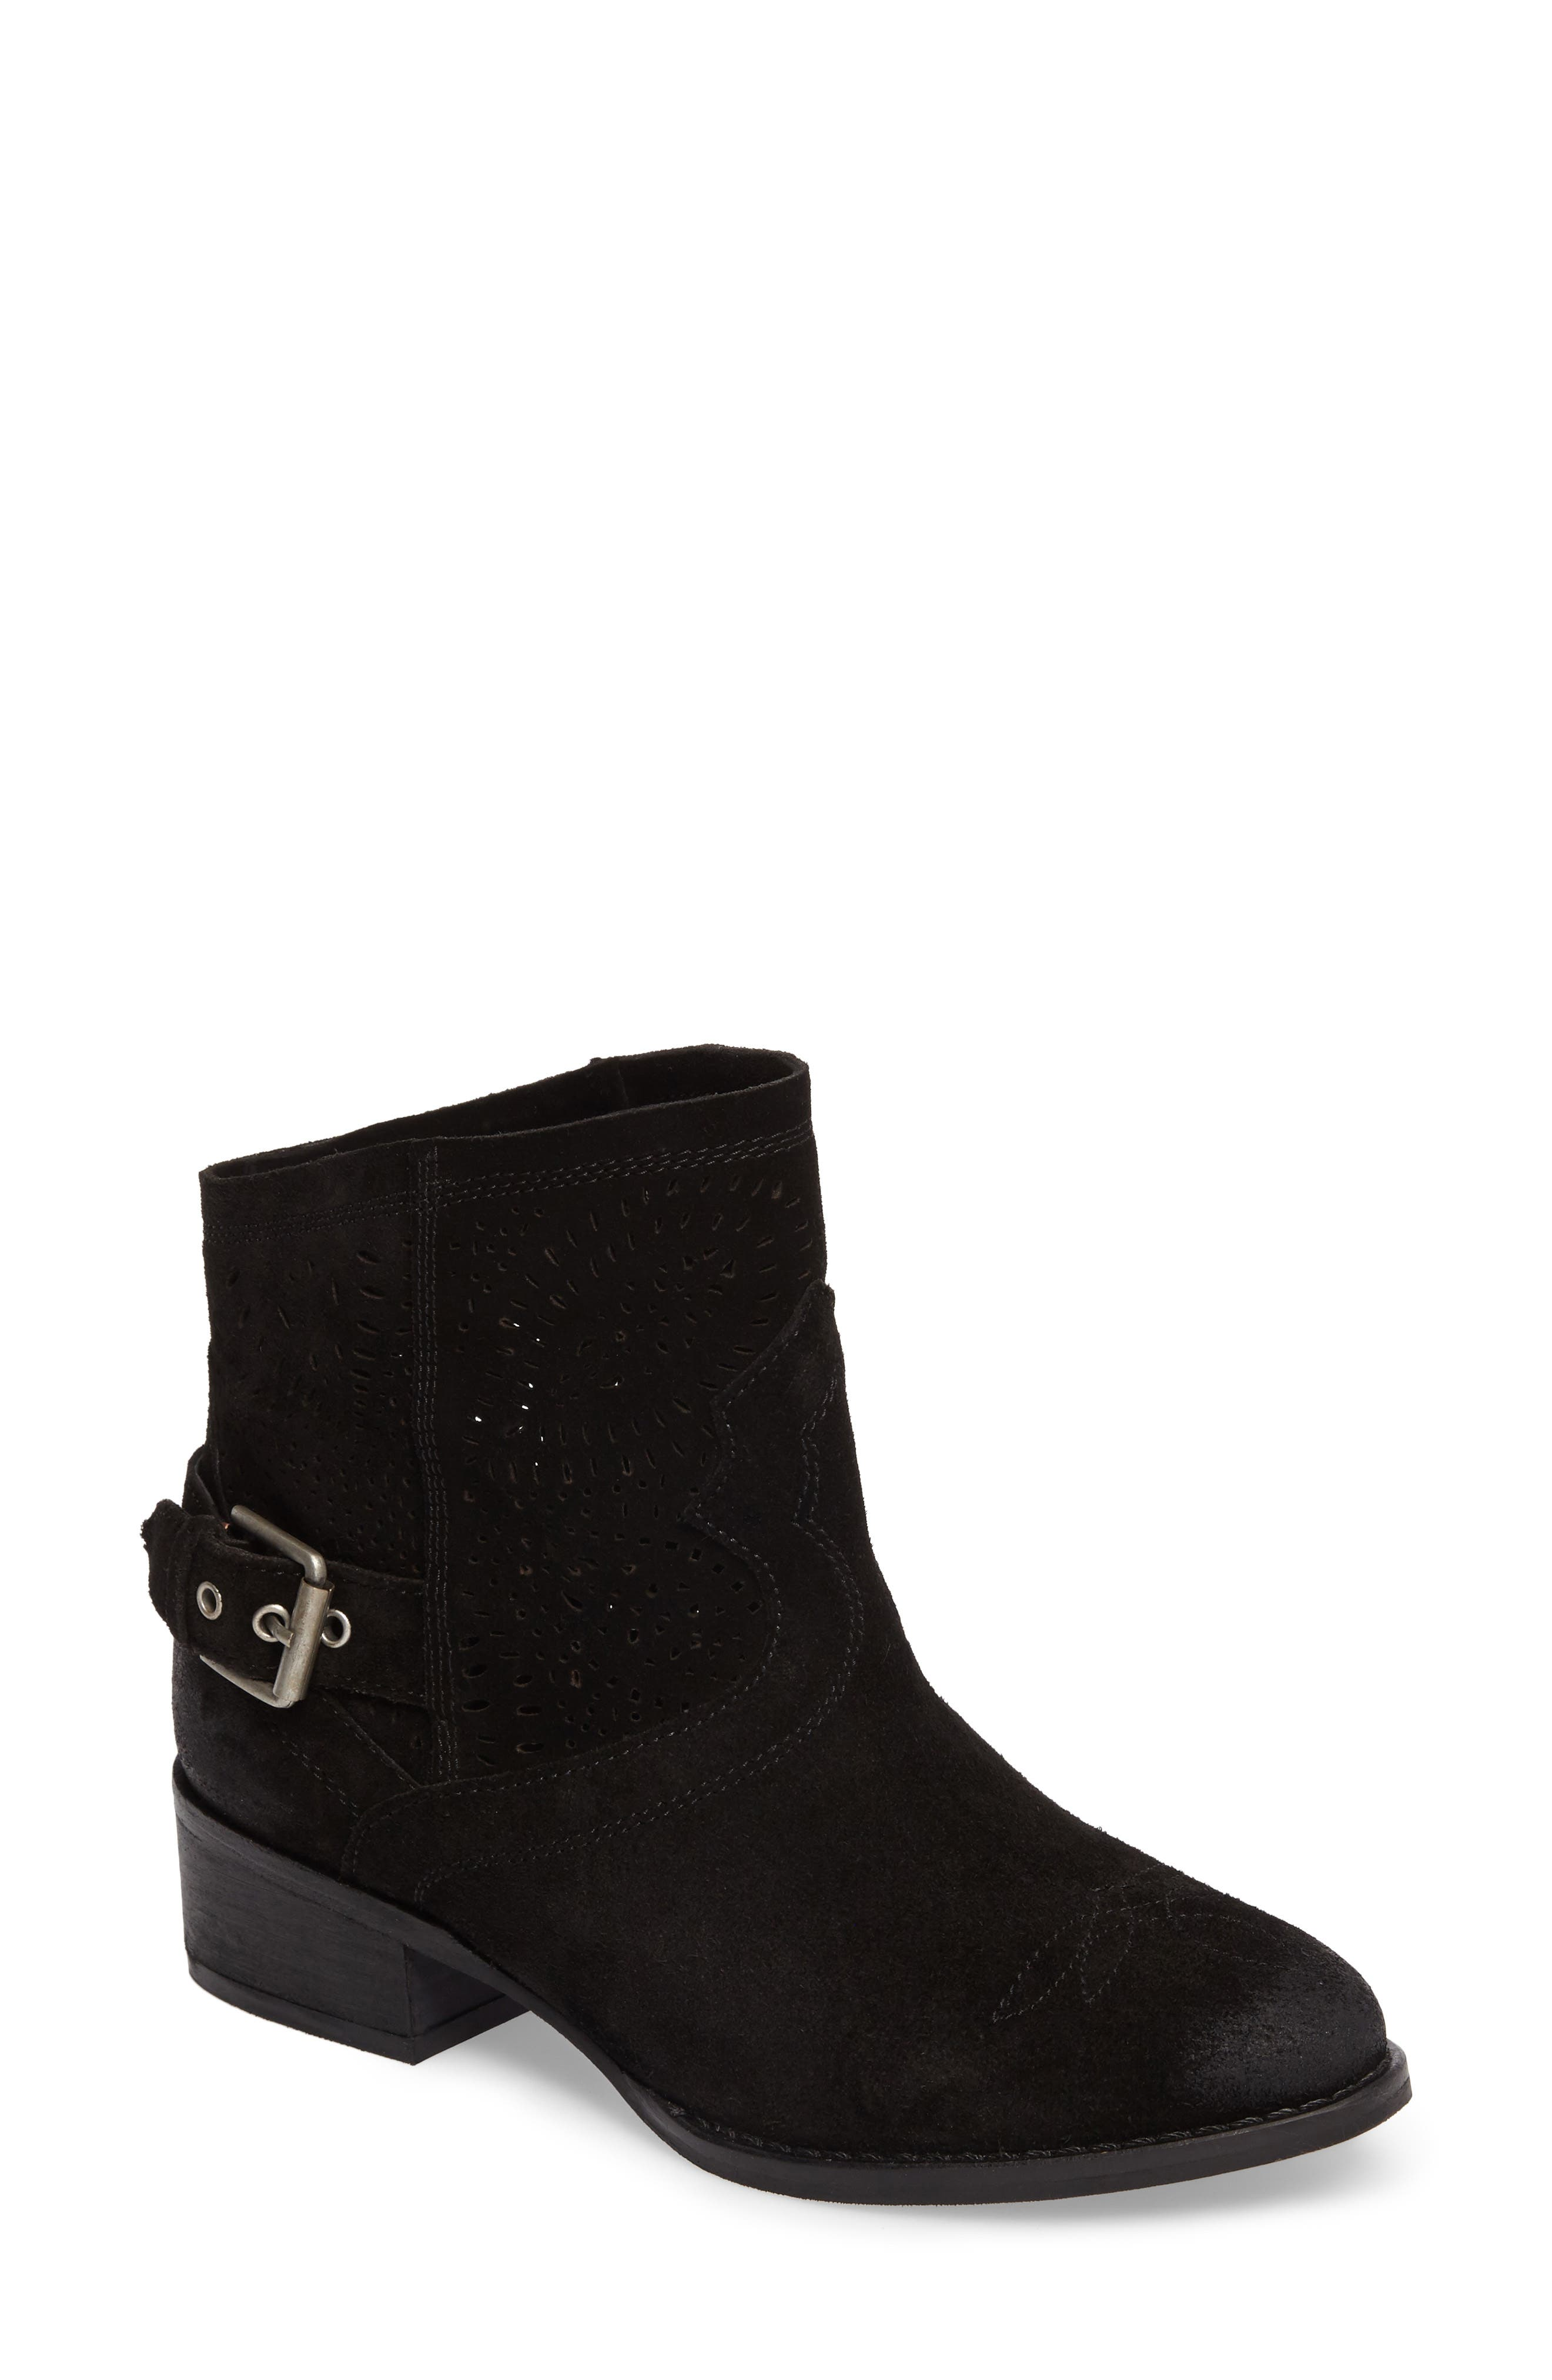 Zoey Perforated Bootie,                         Main,                         color, 001